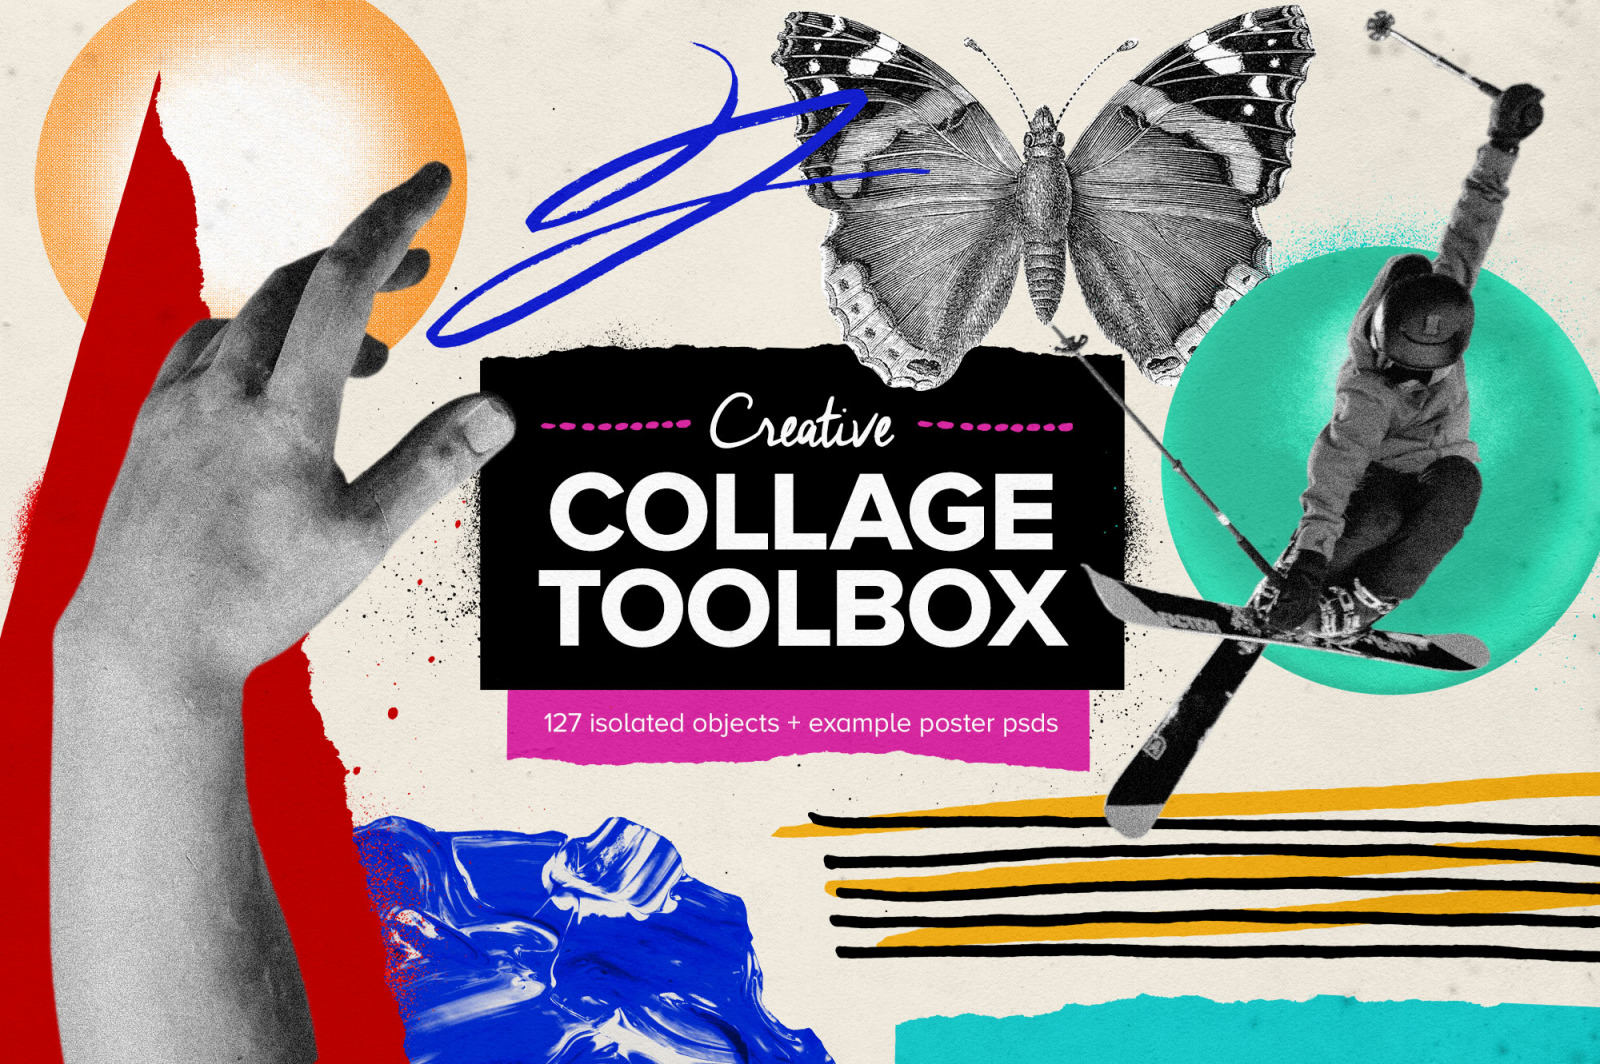 Creative Collage Toolbox